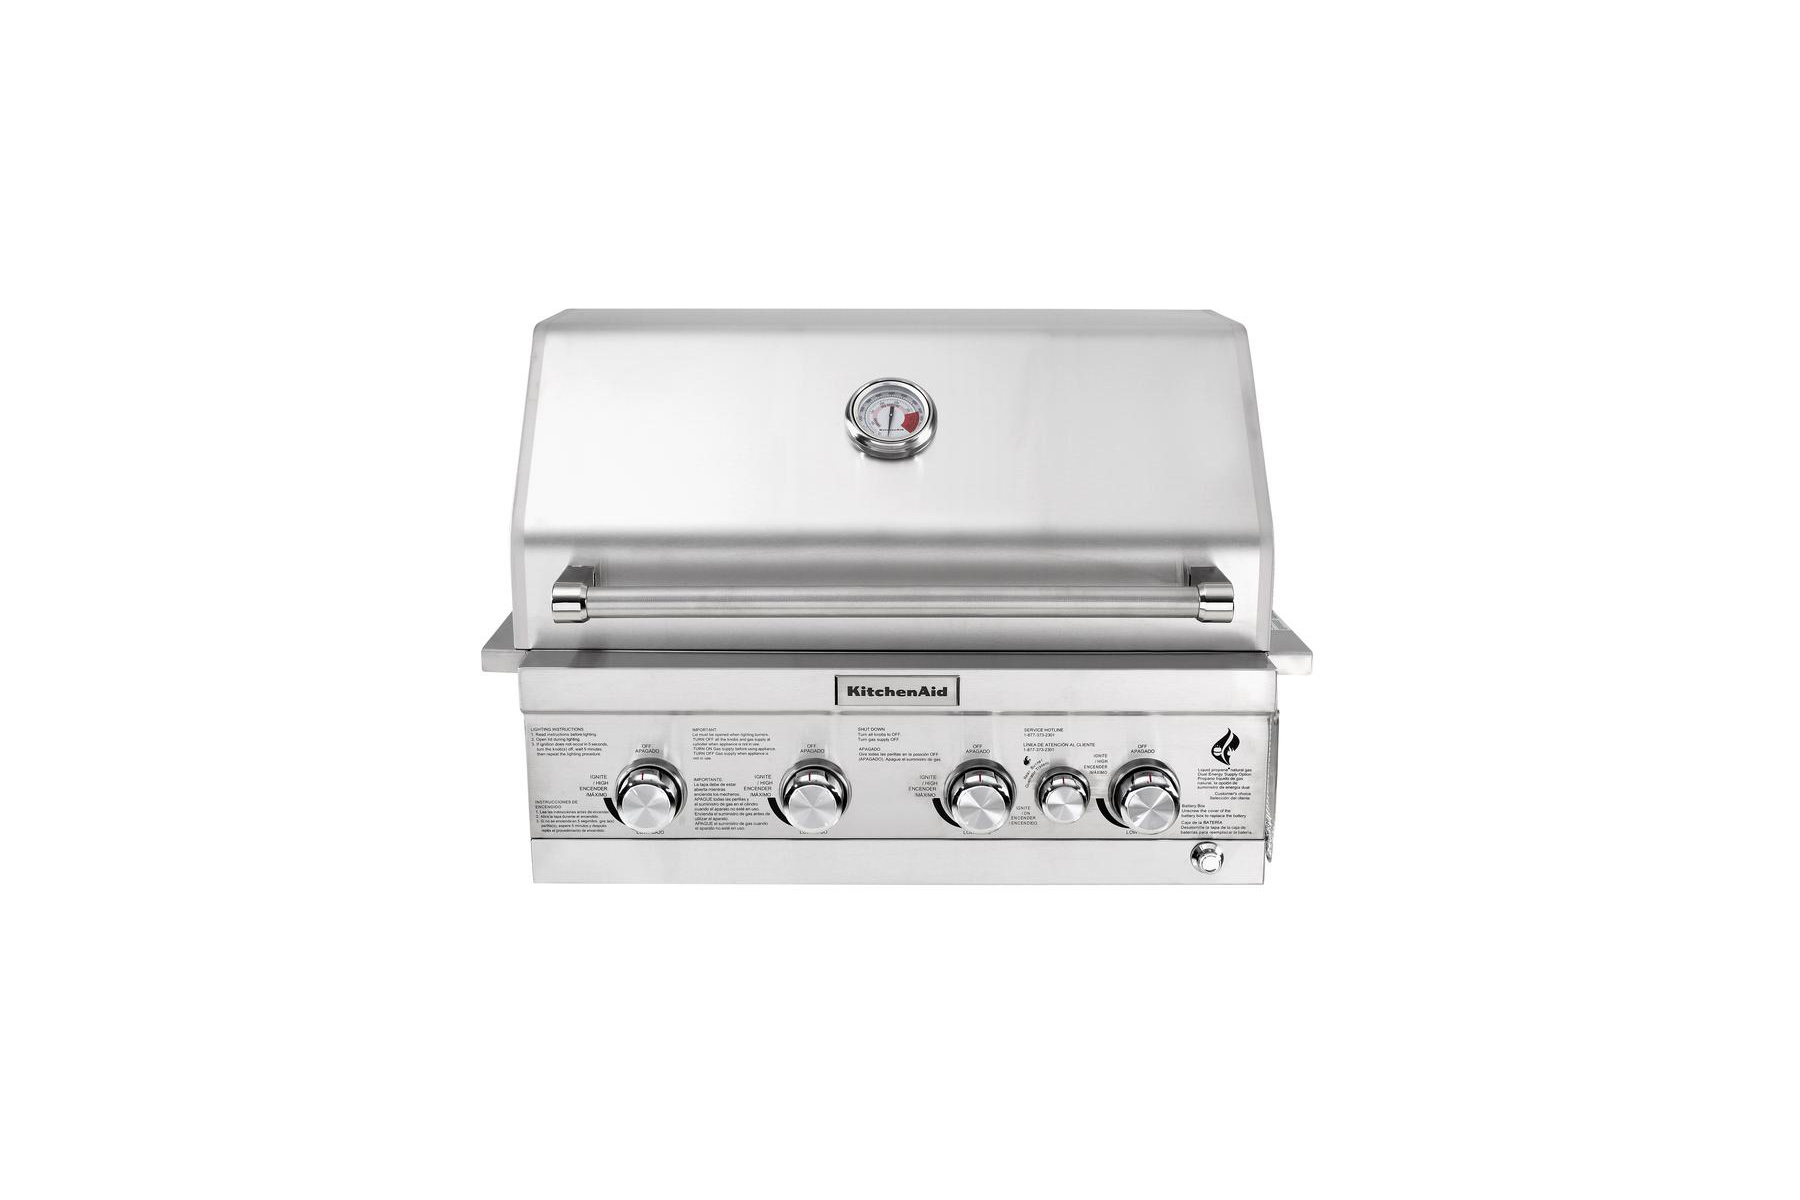 Best Built-In Option: KitchenAid Four Burner Built-In Propane Island Grill Head